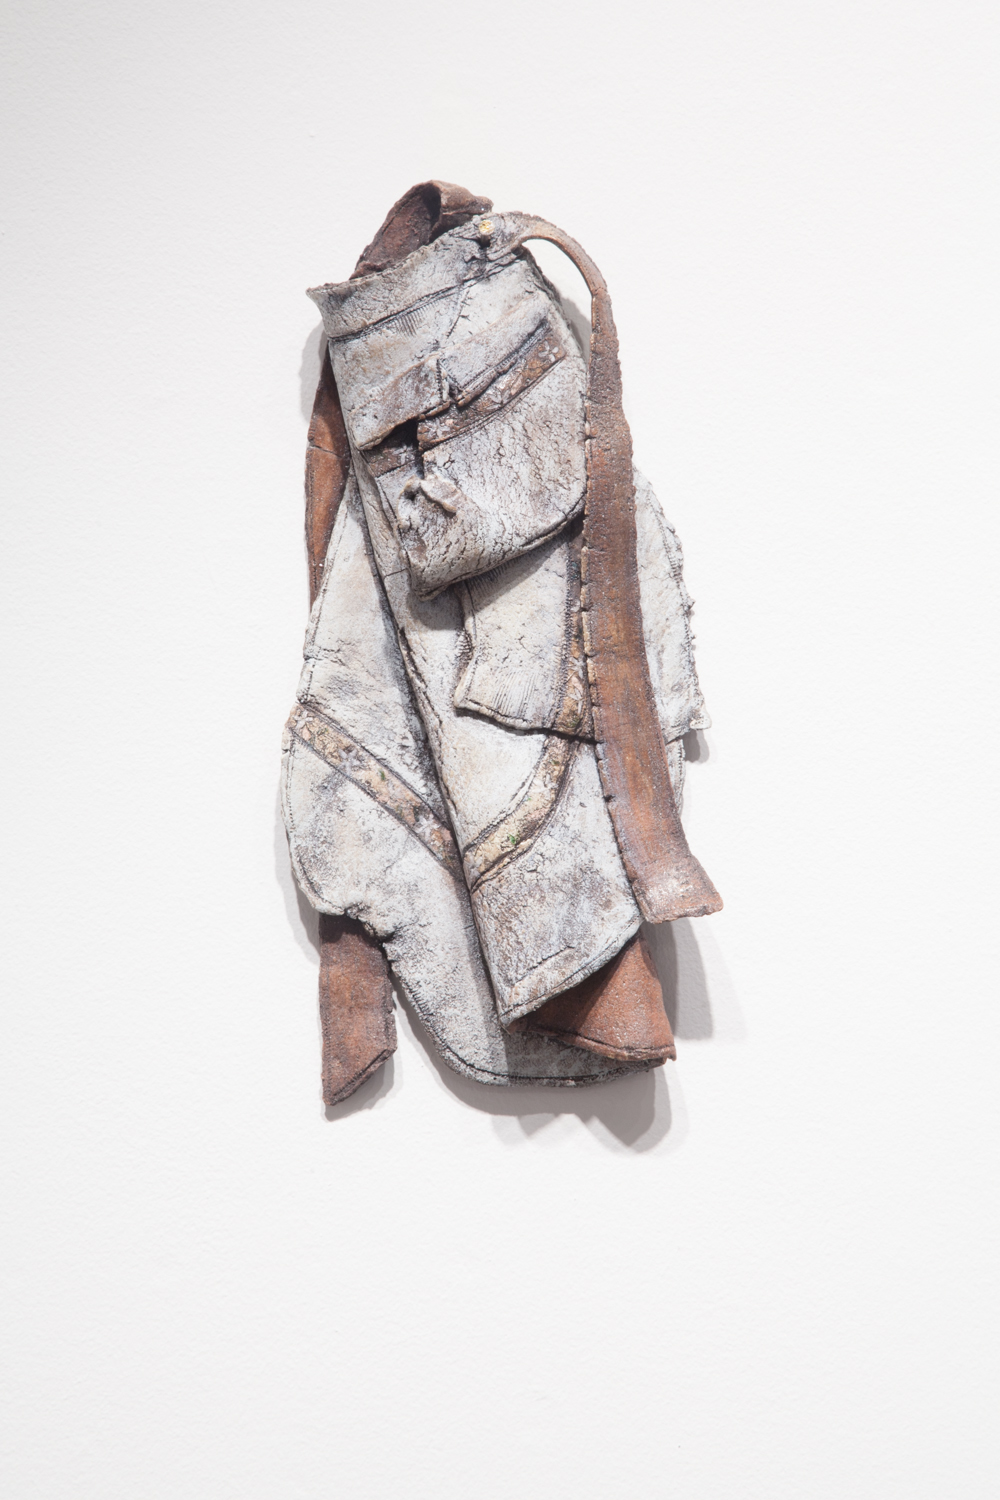 Claire Shurley     G-mama's Apron     reclaimed stoneware, dirt from Shurley farmland, slip, stain, glaze, cone 6 oxidation